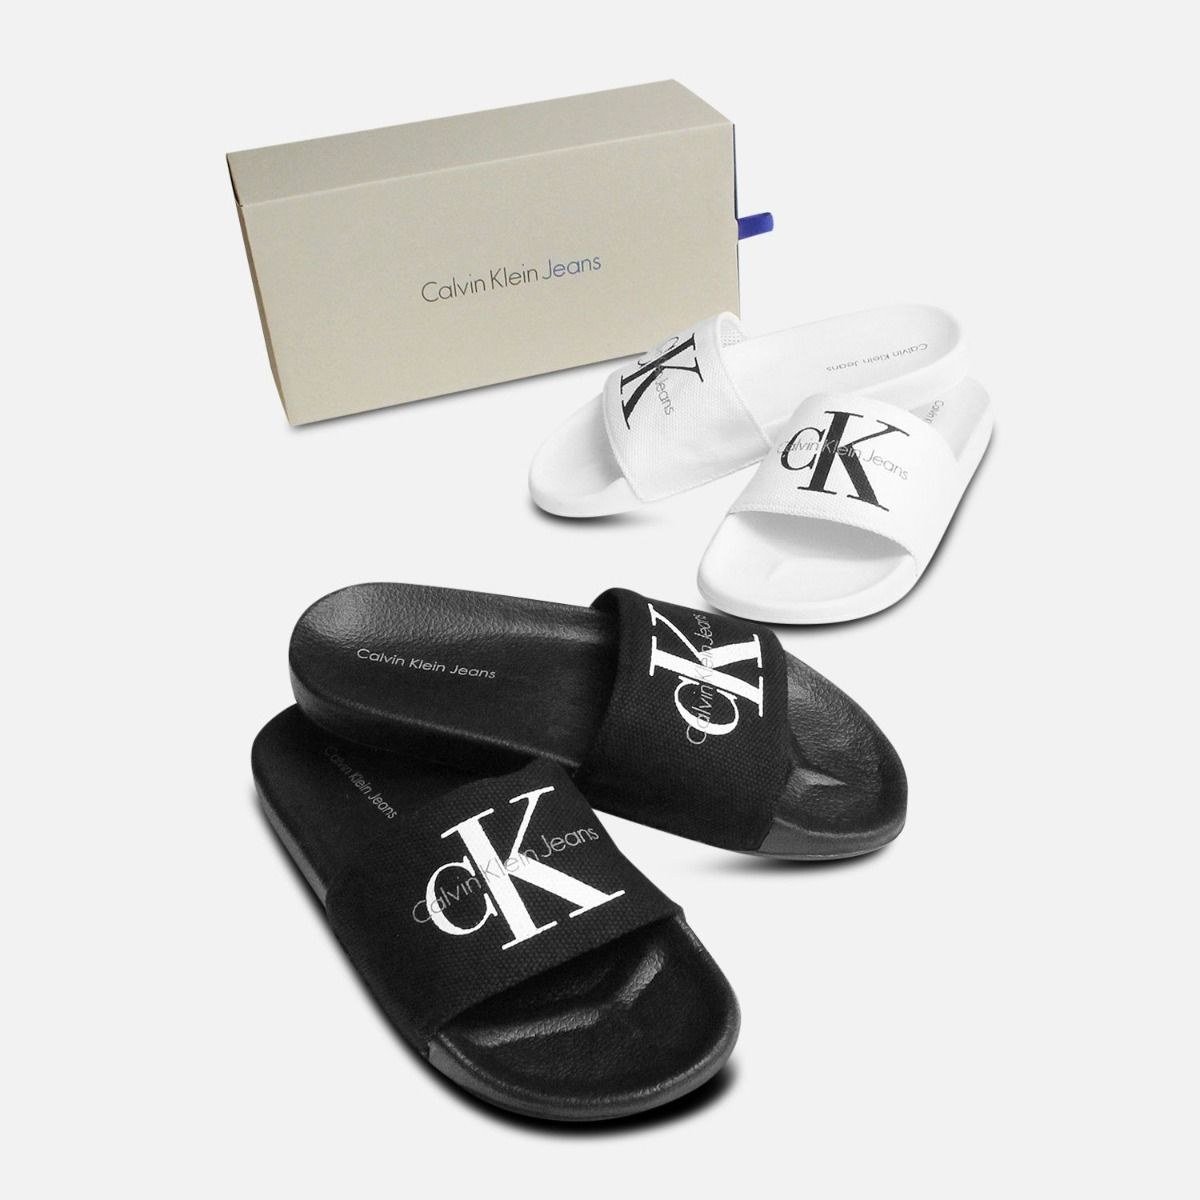 Calvin Klein Viggo Slides in Black Canvas Sandals